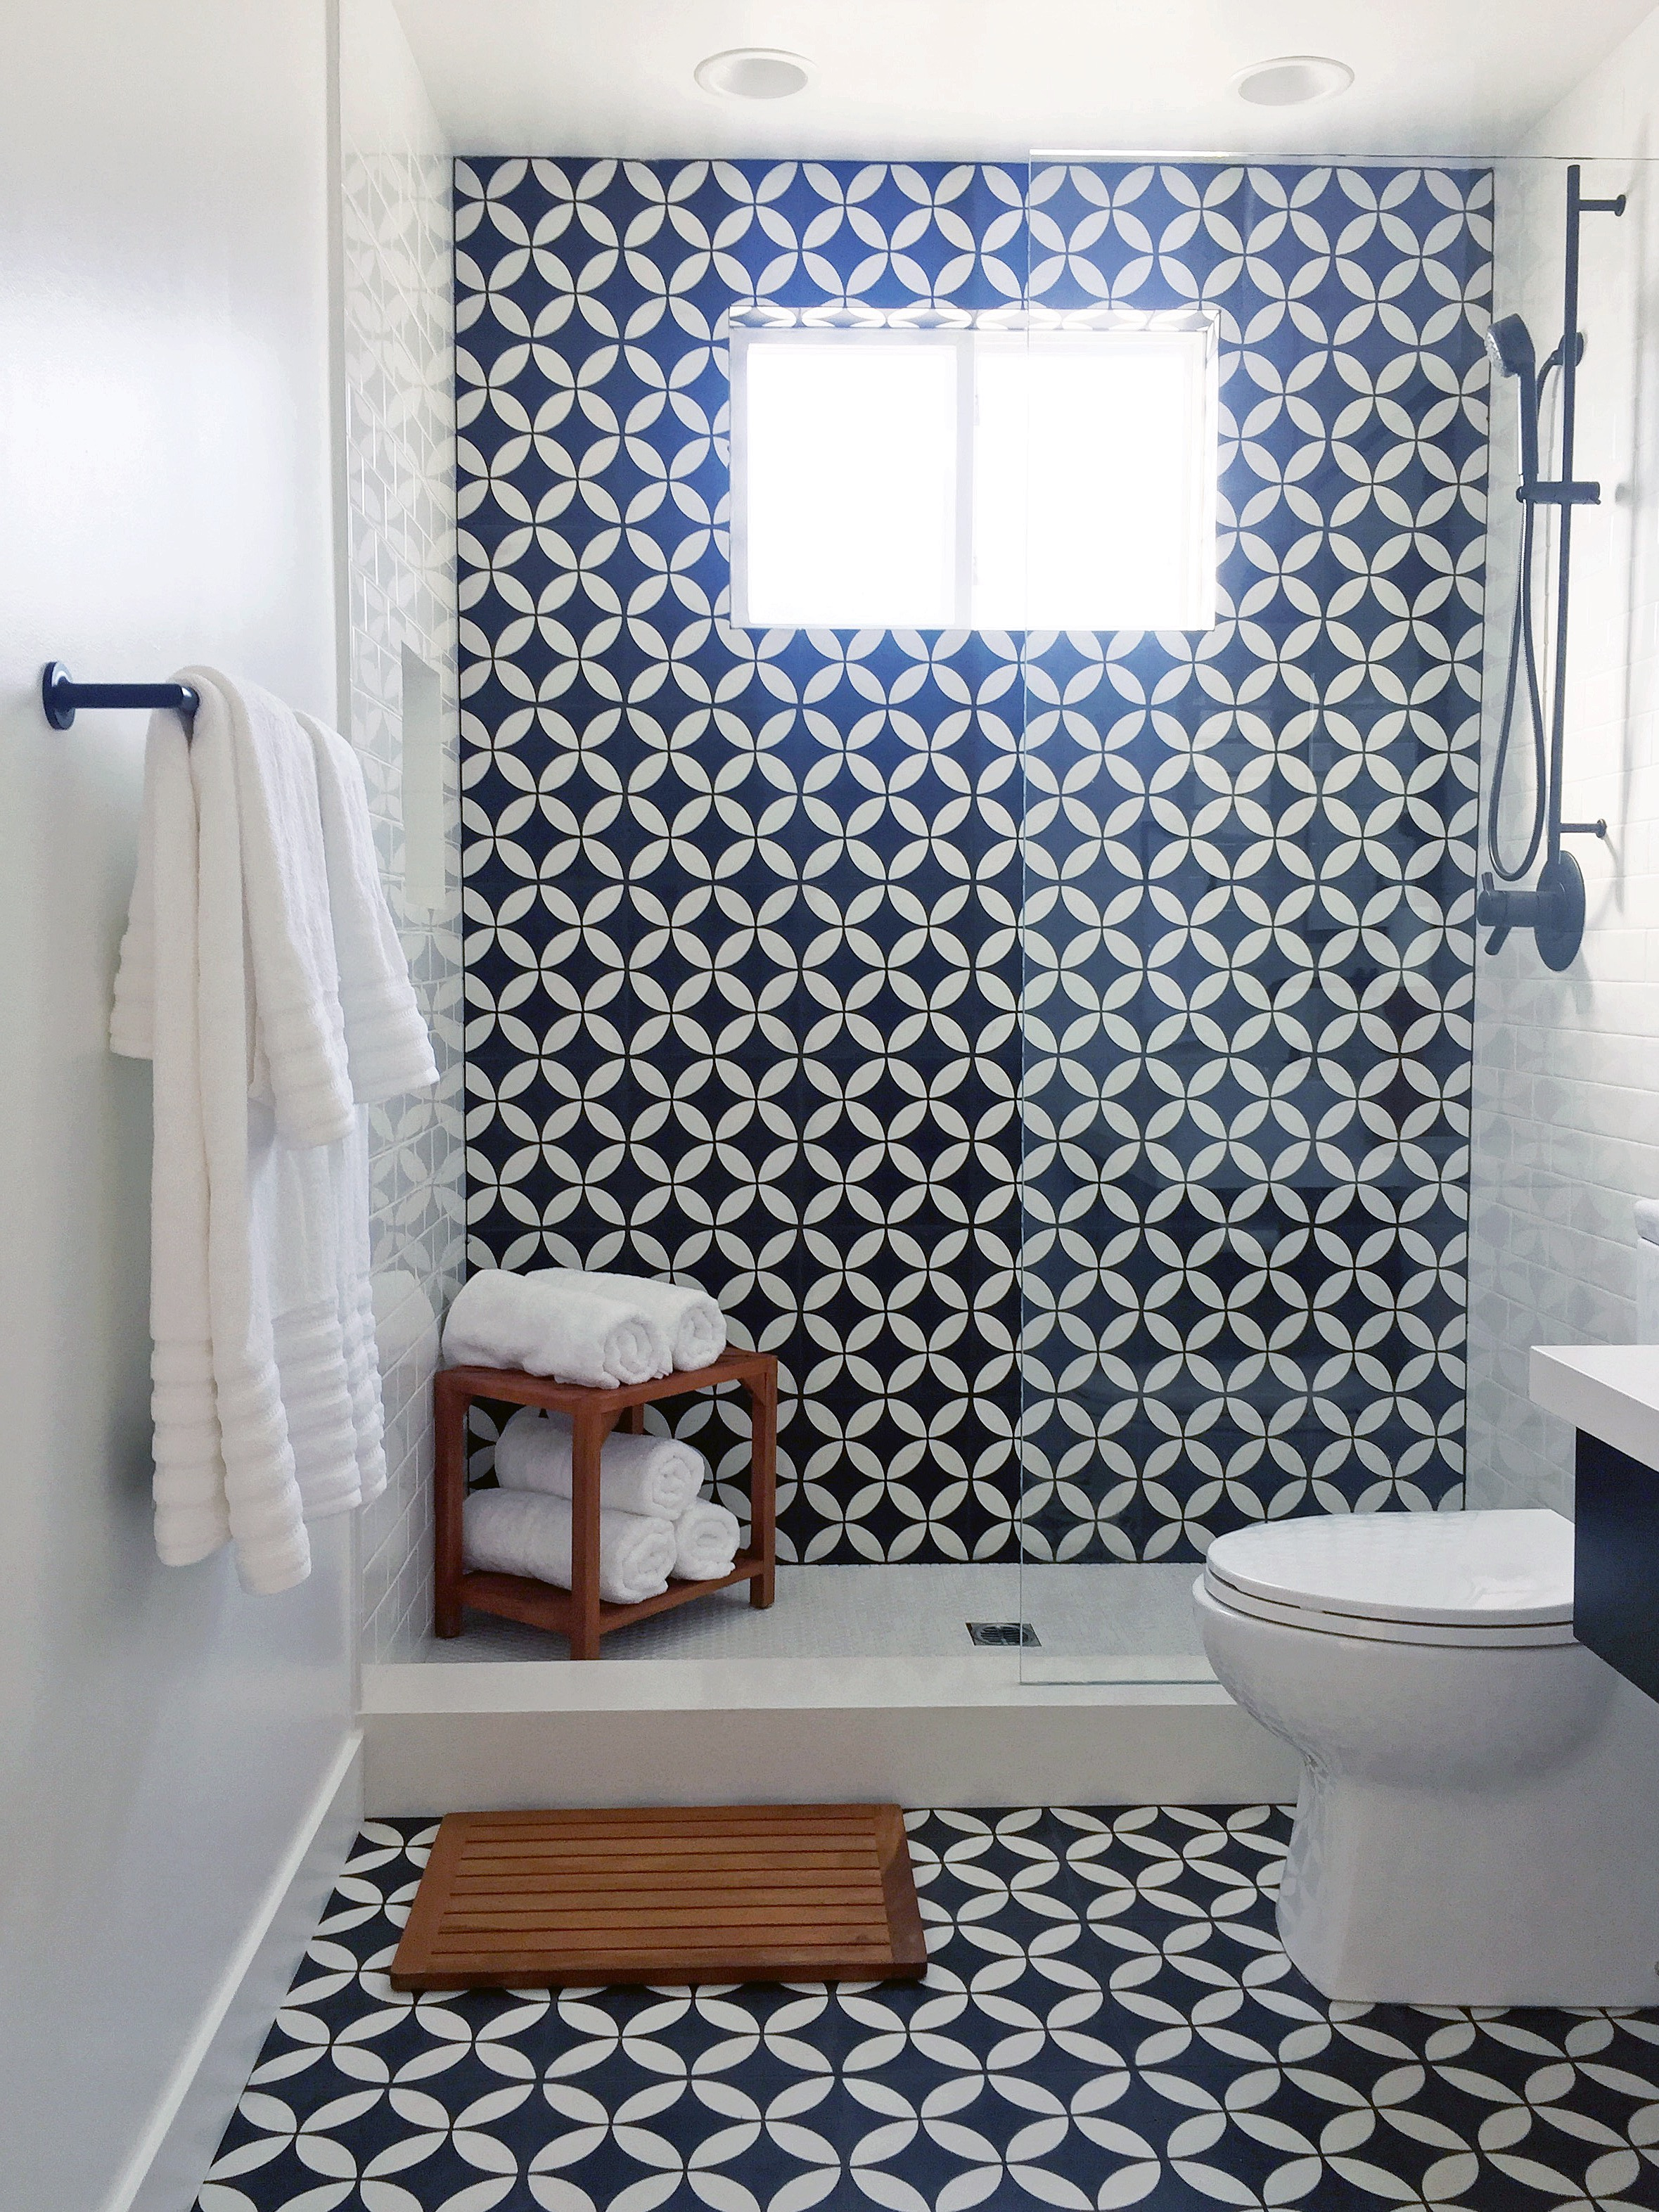 Black And White Small Bathroom Shower And Toilet Combo (Image 4 of 14)